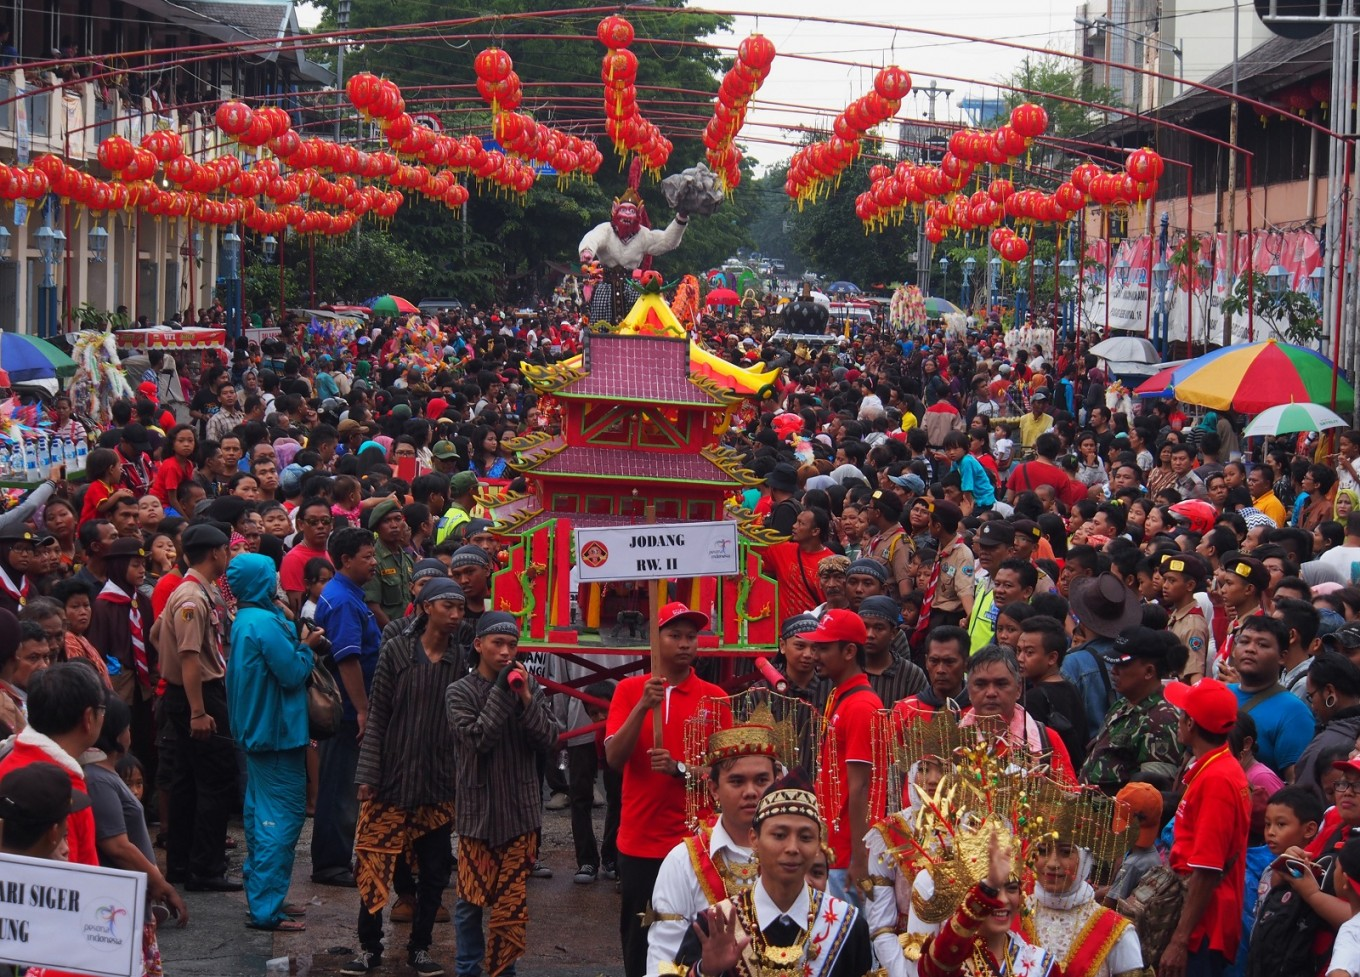 Balong hamlet in Surakarta, the home for Chinese